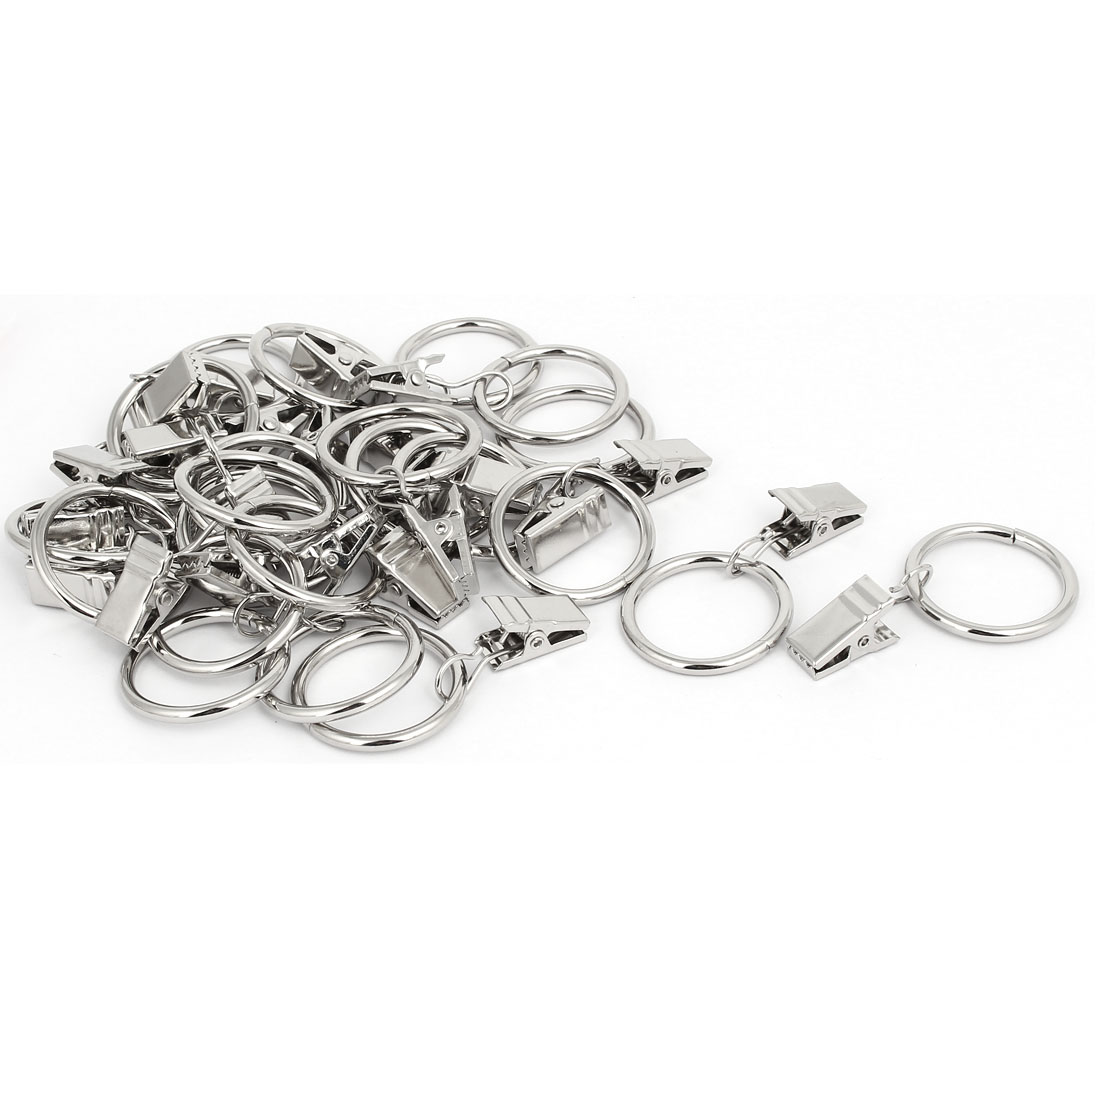 Metal Drapes Curtain Clip Ring Hanging Hooks Silver Tone 1